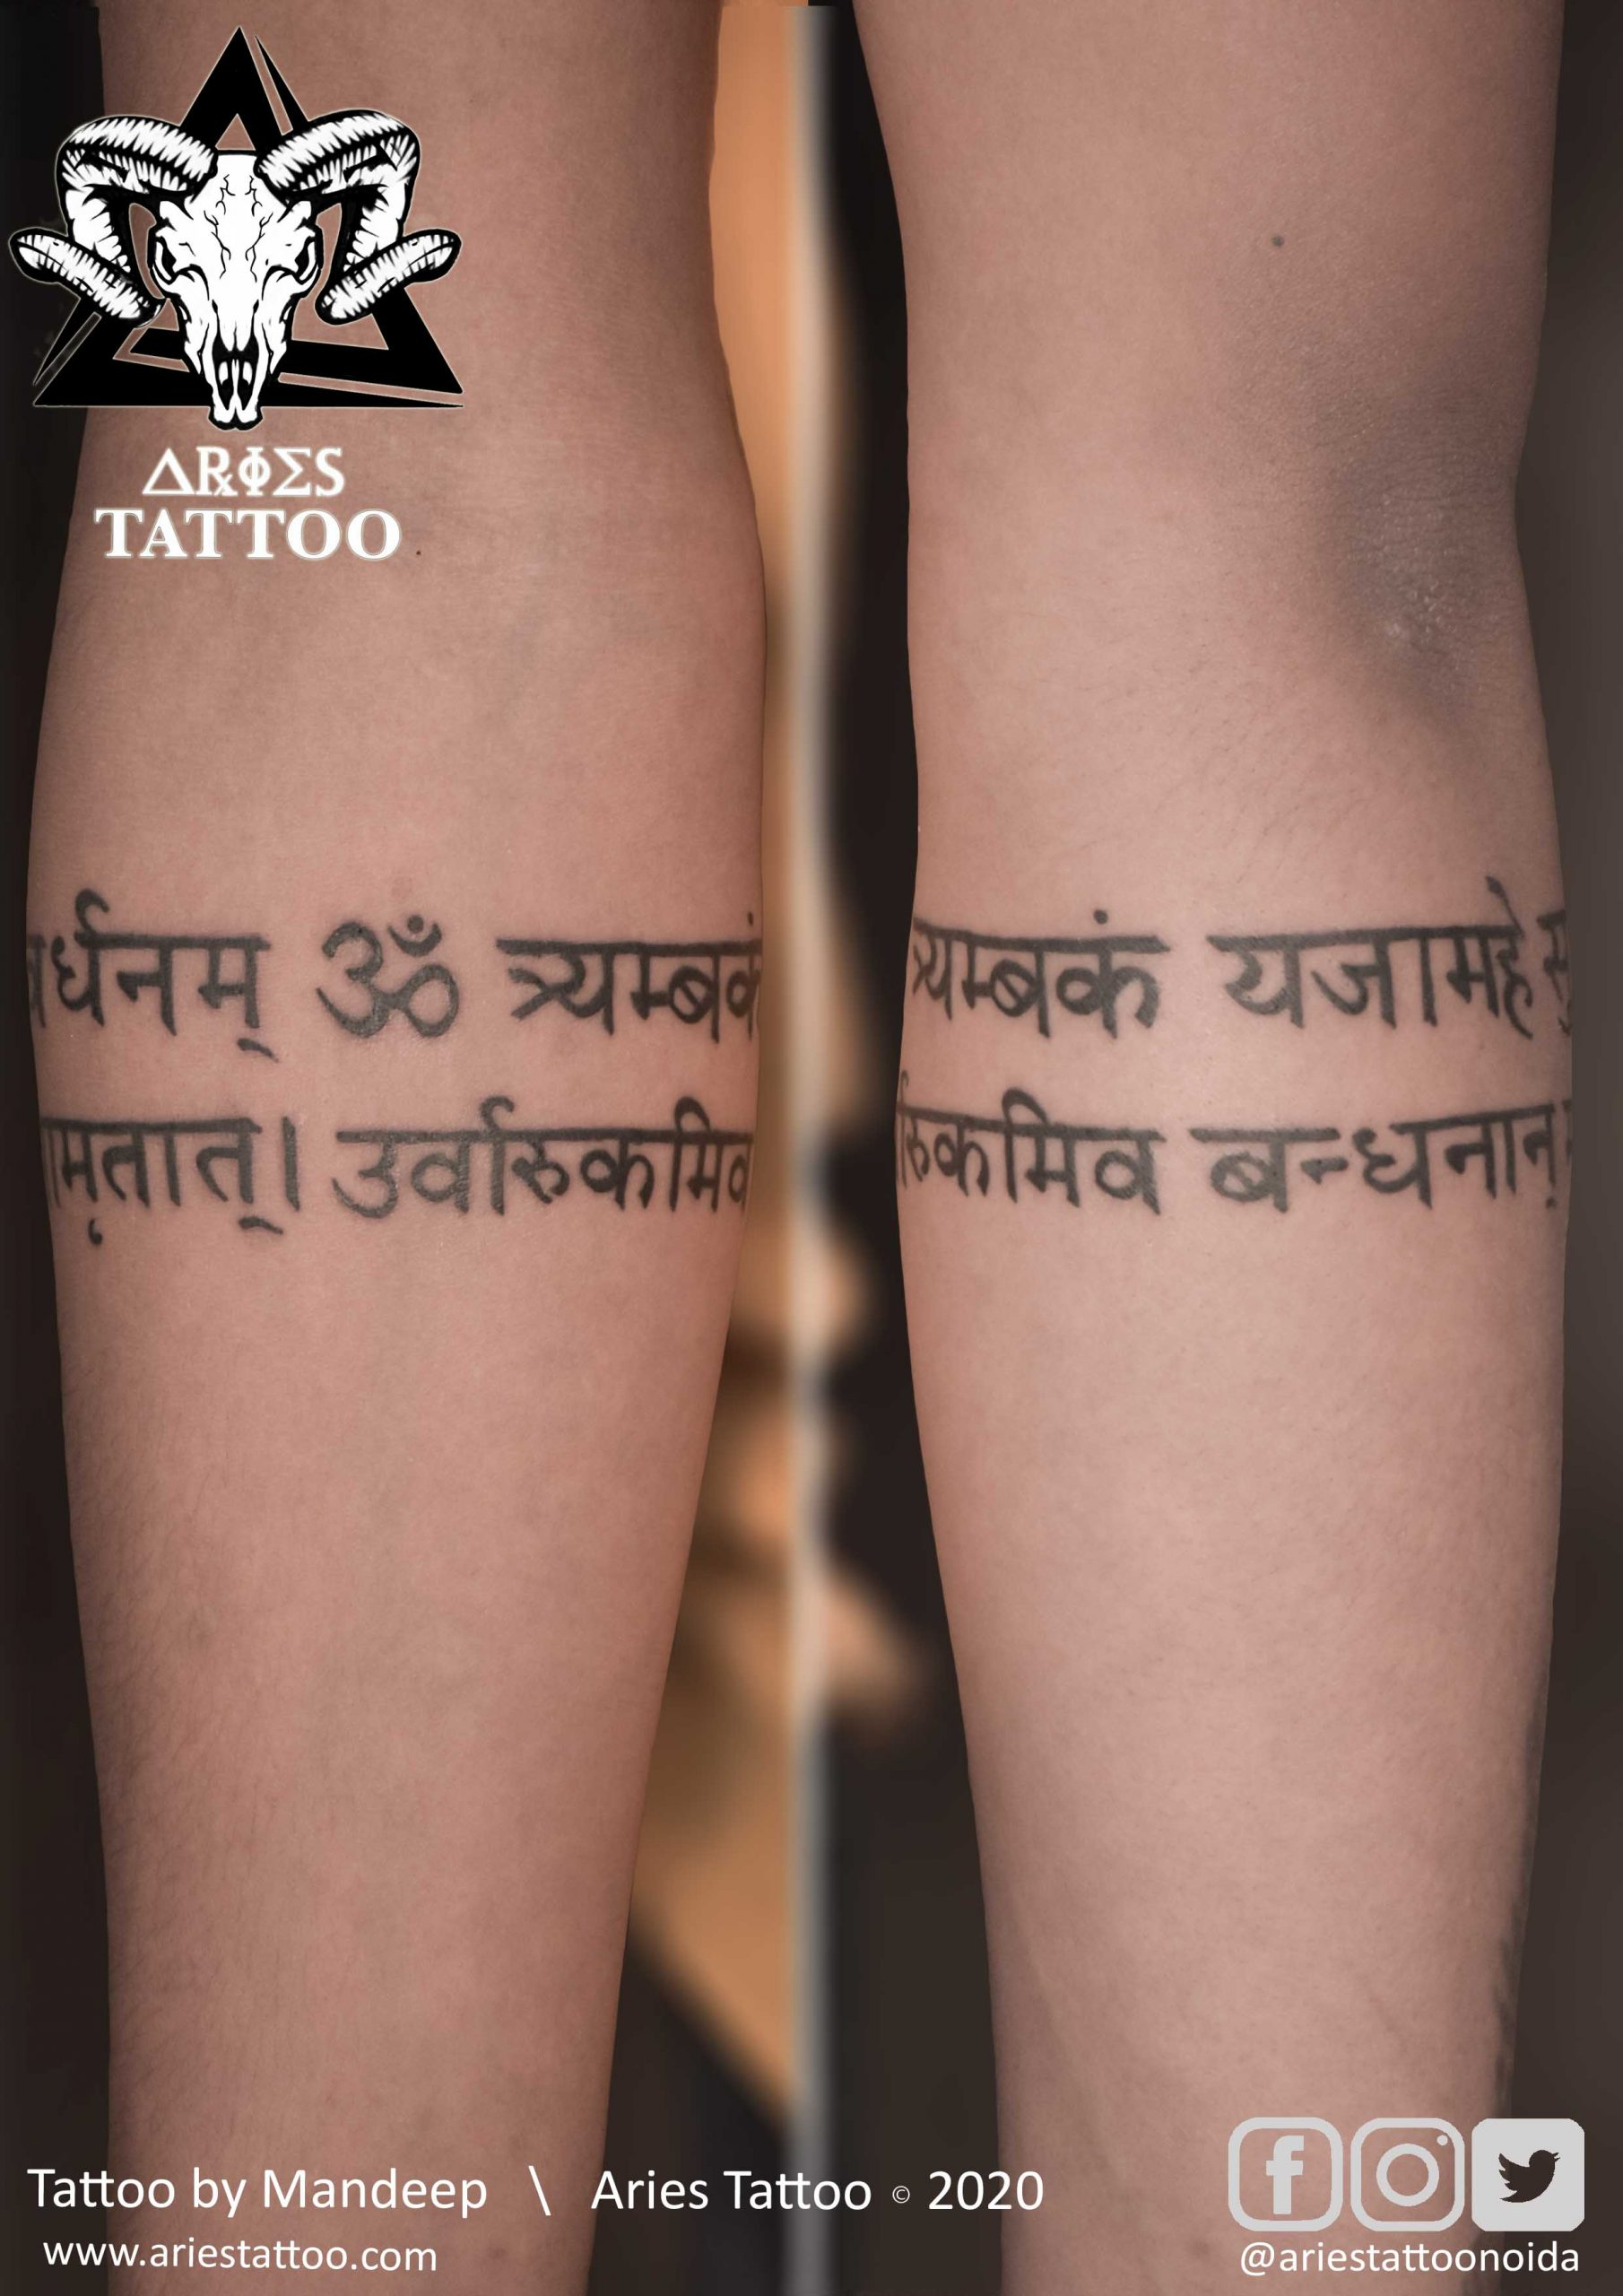 maha mritunjay mantra tattoo_ayaan |Tattoo Shop and Studio In Noida